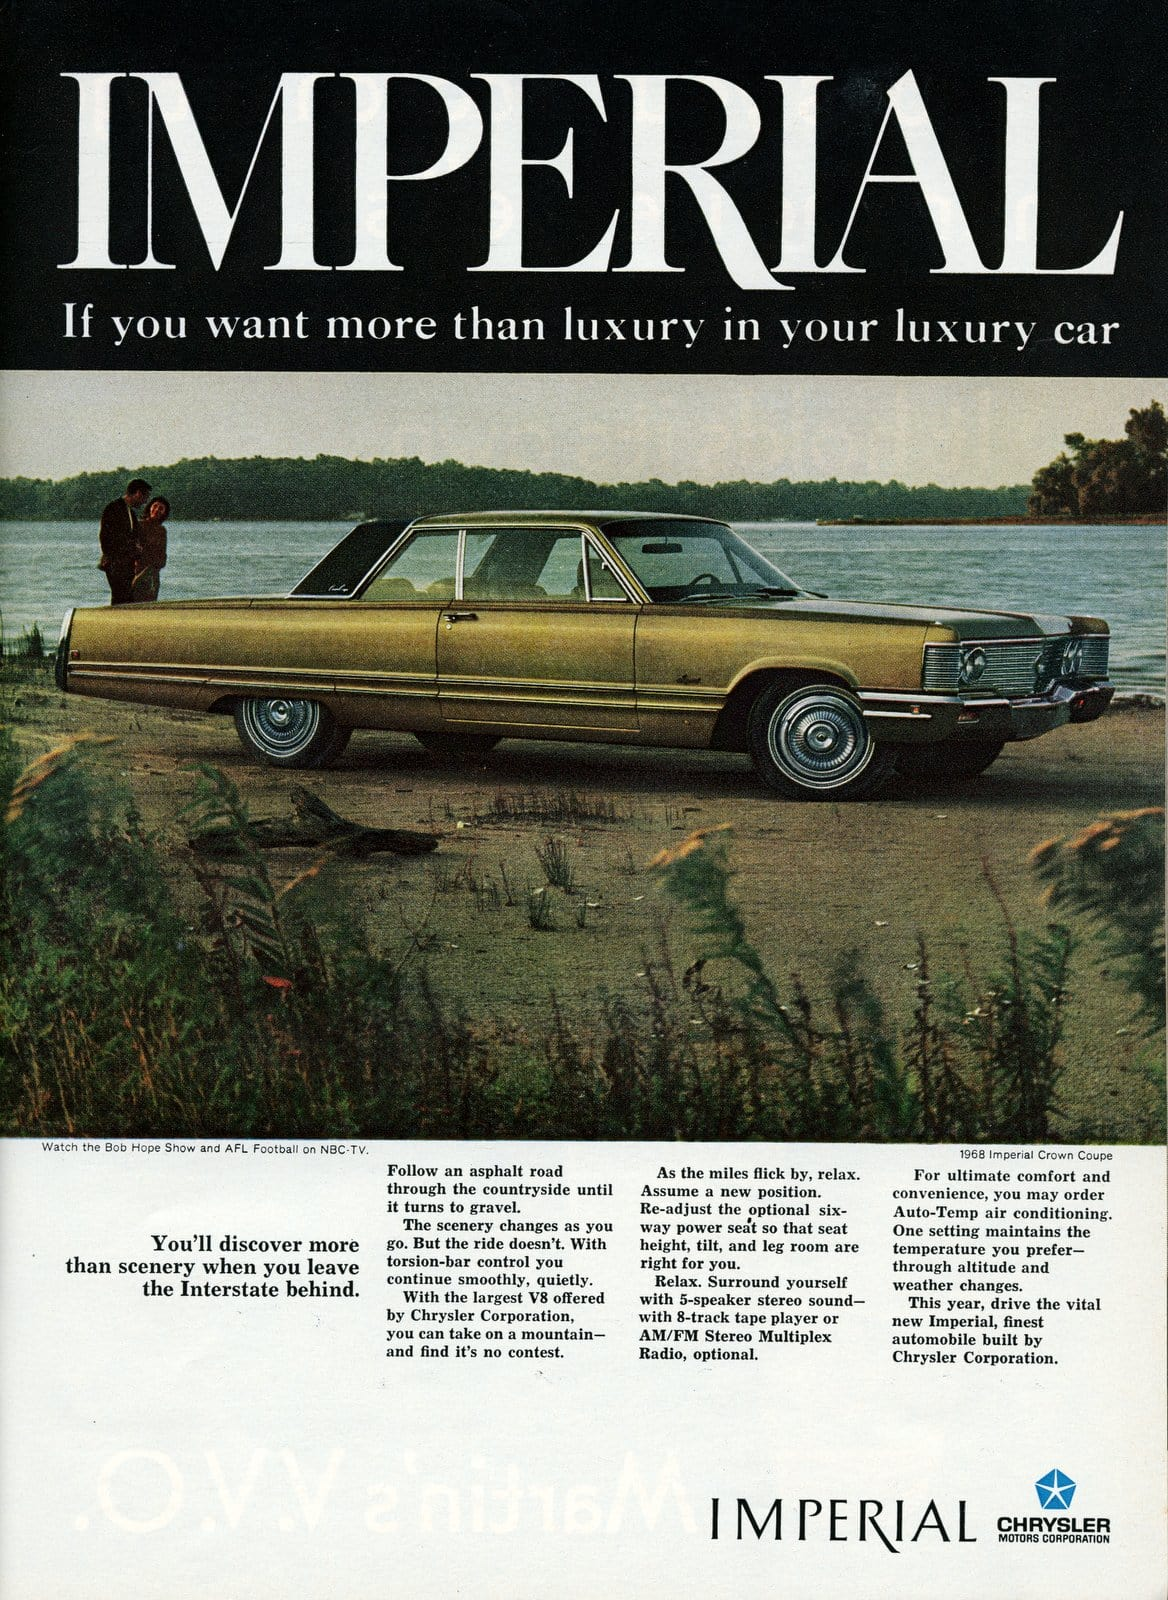 1968 Chrysler Imperial - vintage classic car ad (7)